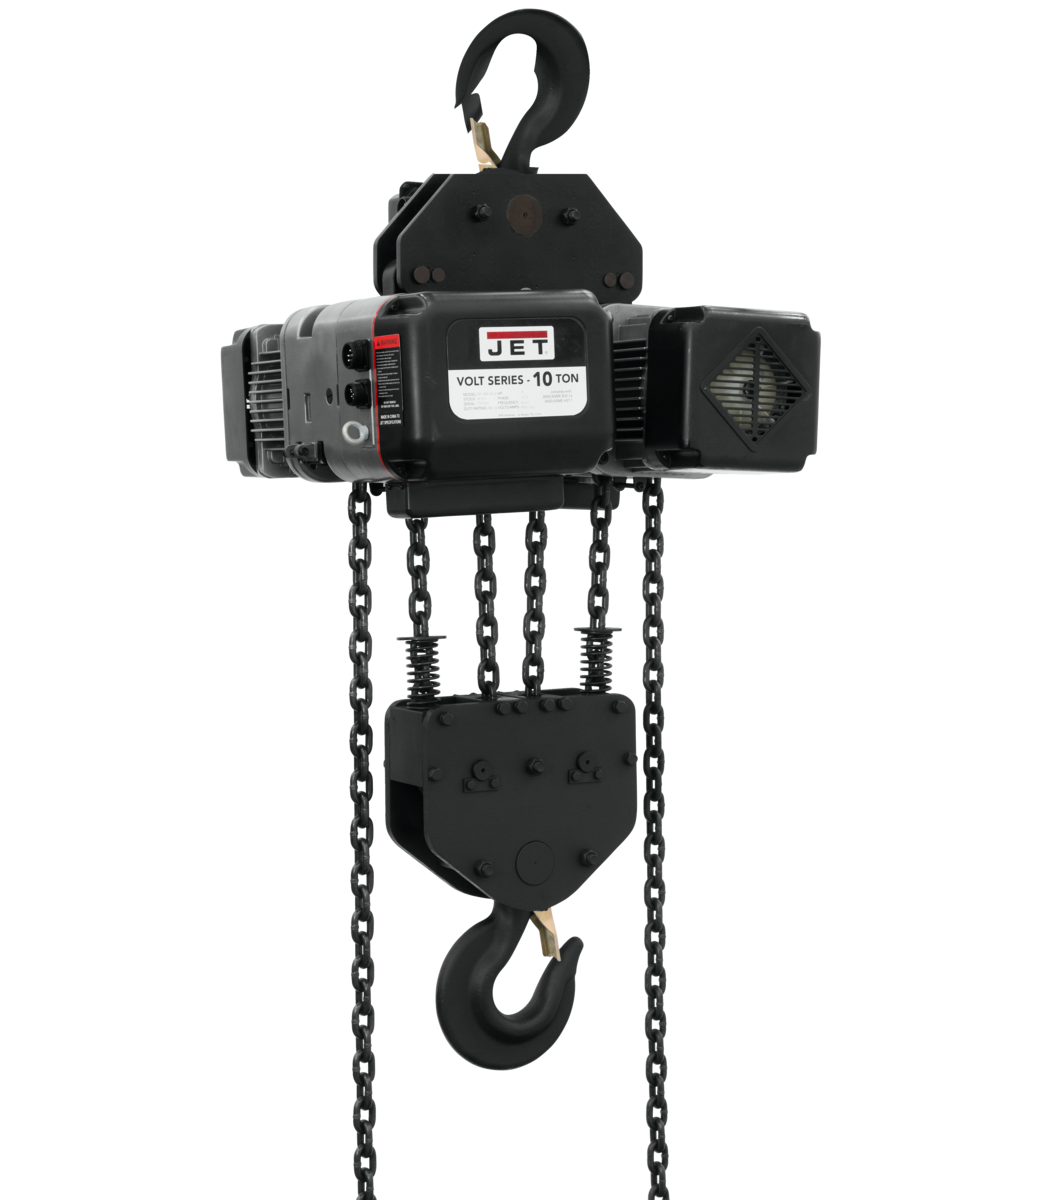 VOLT 10T VARIABLE-SPEED ELECTRIC HOIST  3PH 230V 10' LIFT